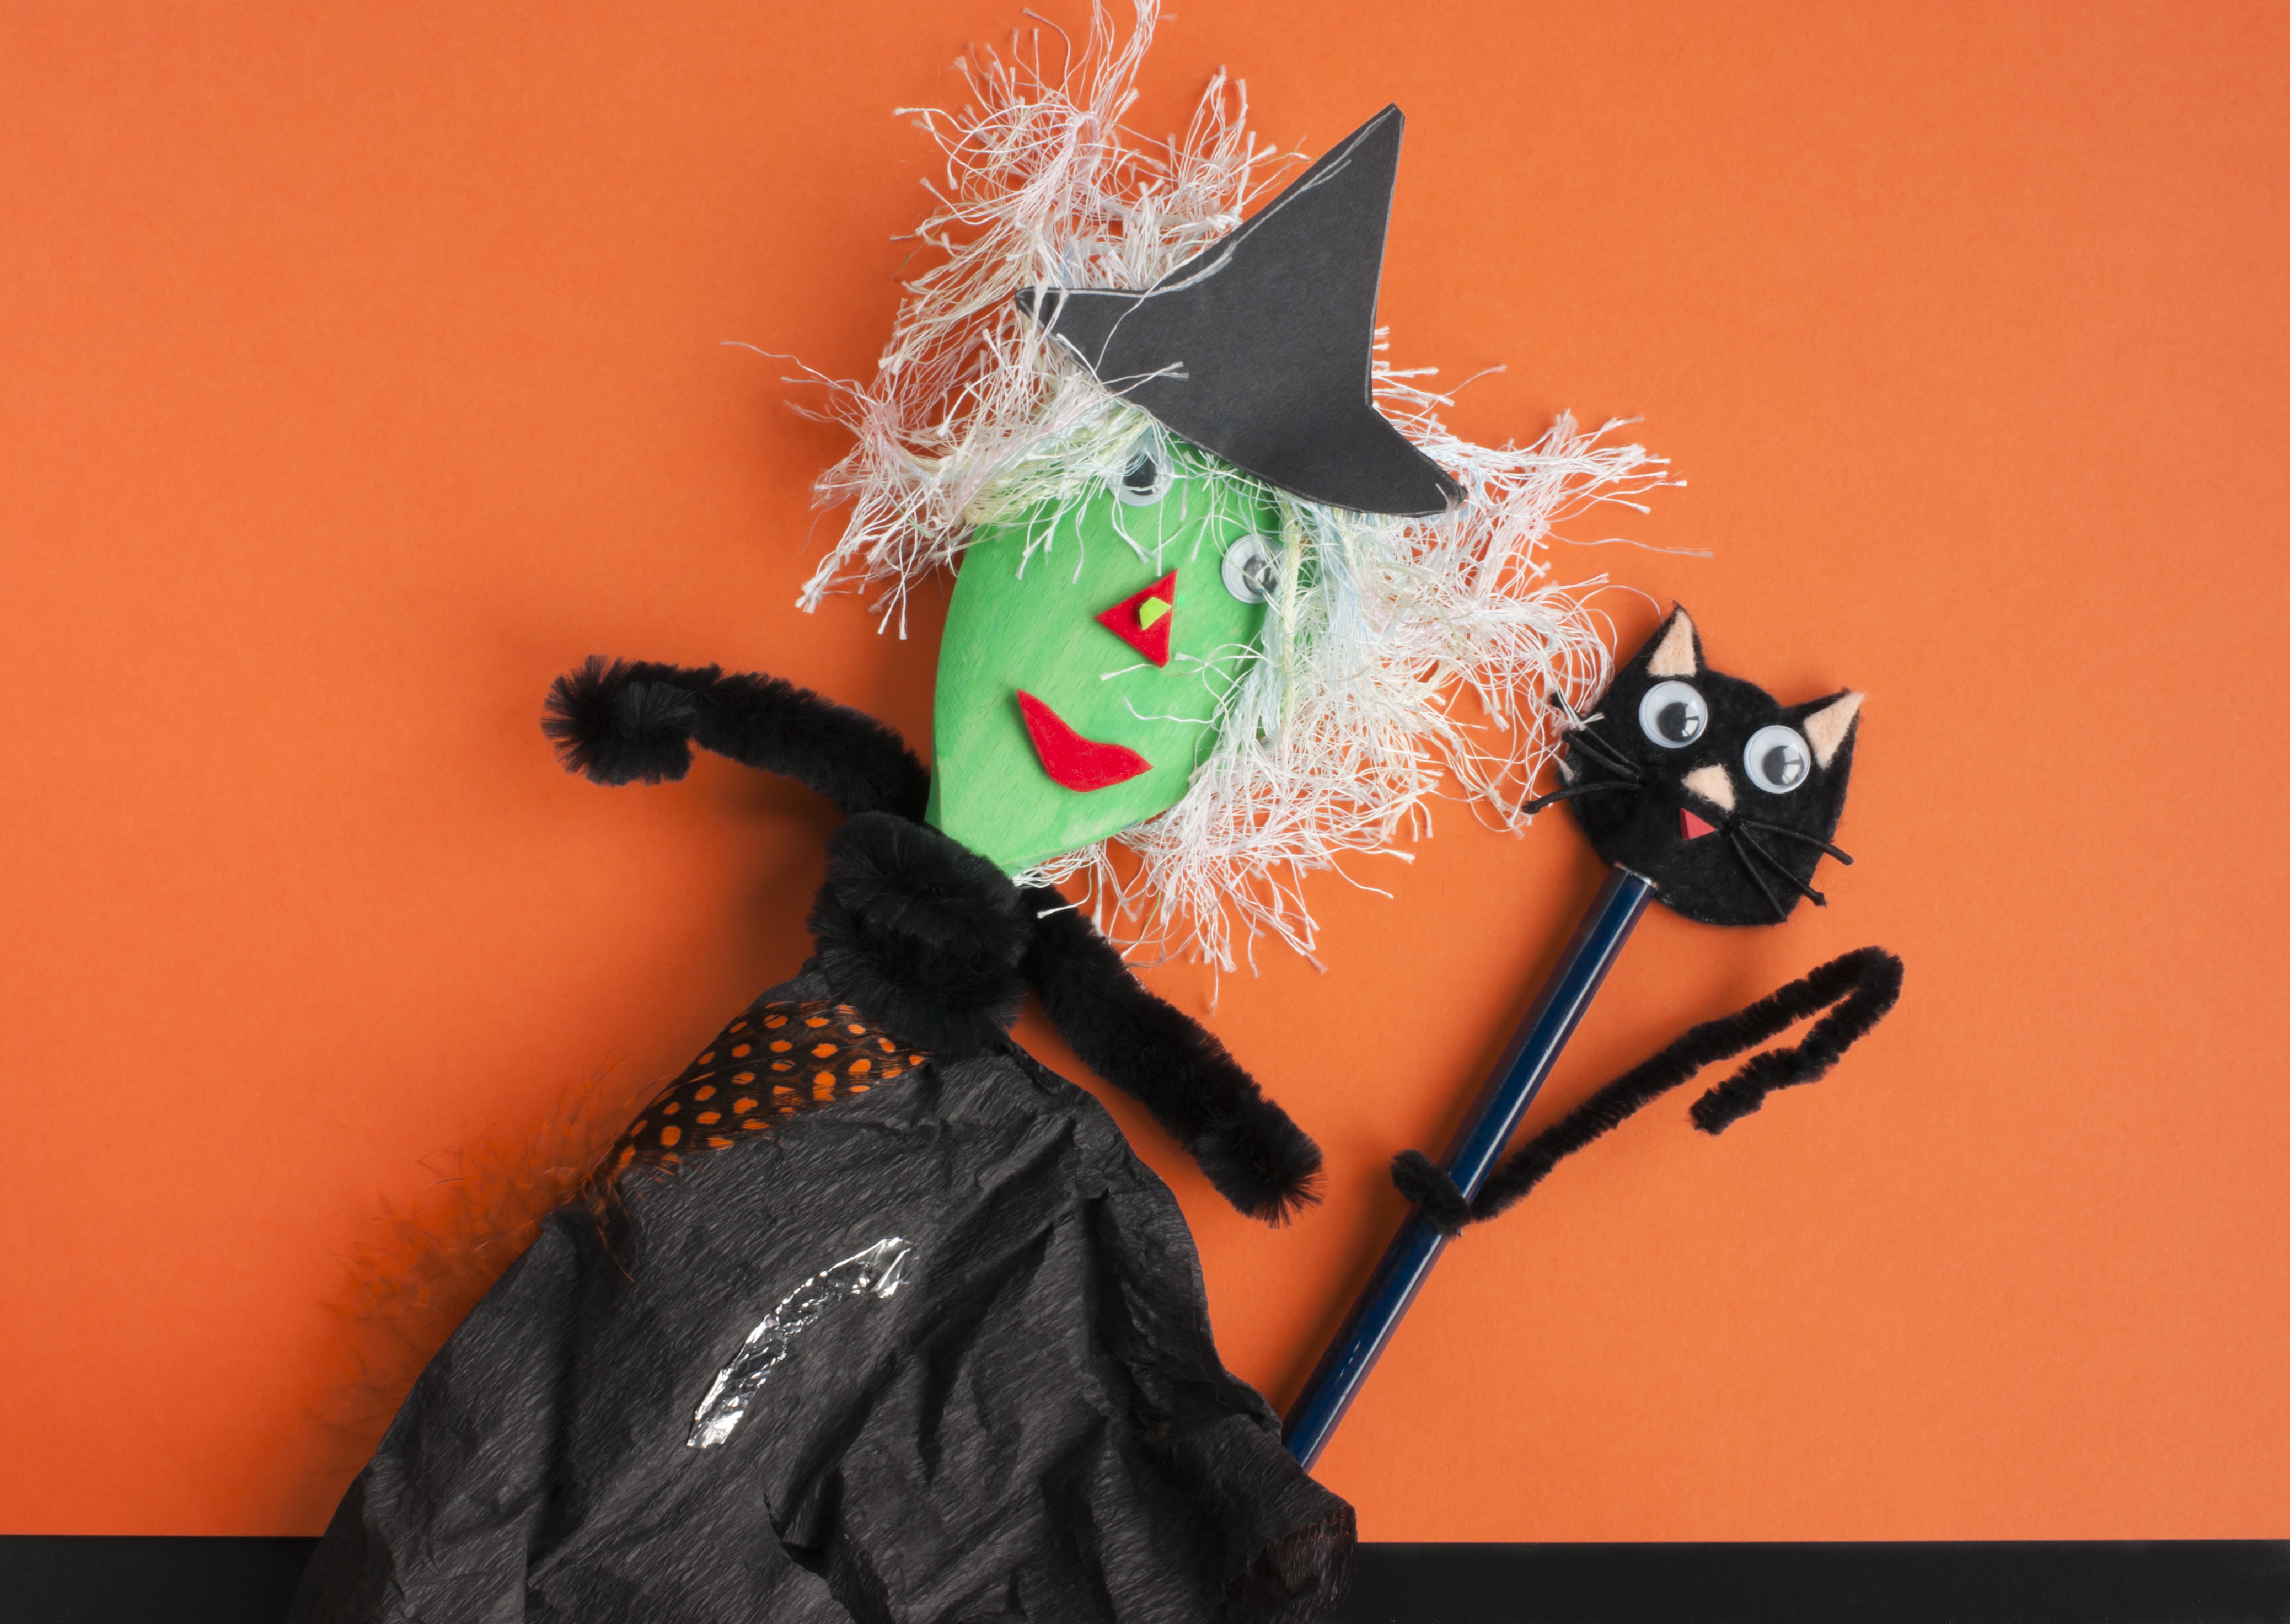 Halloween toys. Witch made of a wooden spoon tissue paper and pipe cleaners and a cat made of an old pencil and pipe cleaners. Concept for Halloween craft and fun with children.